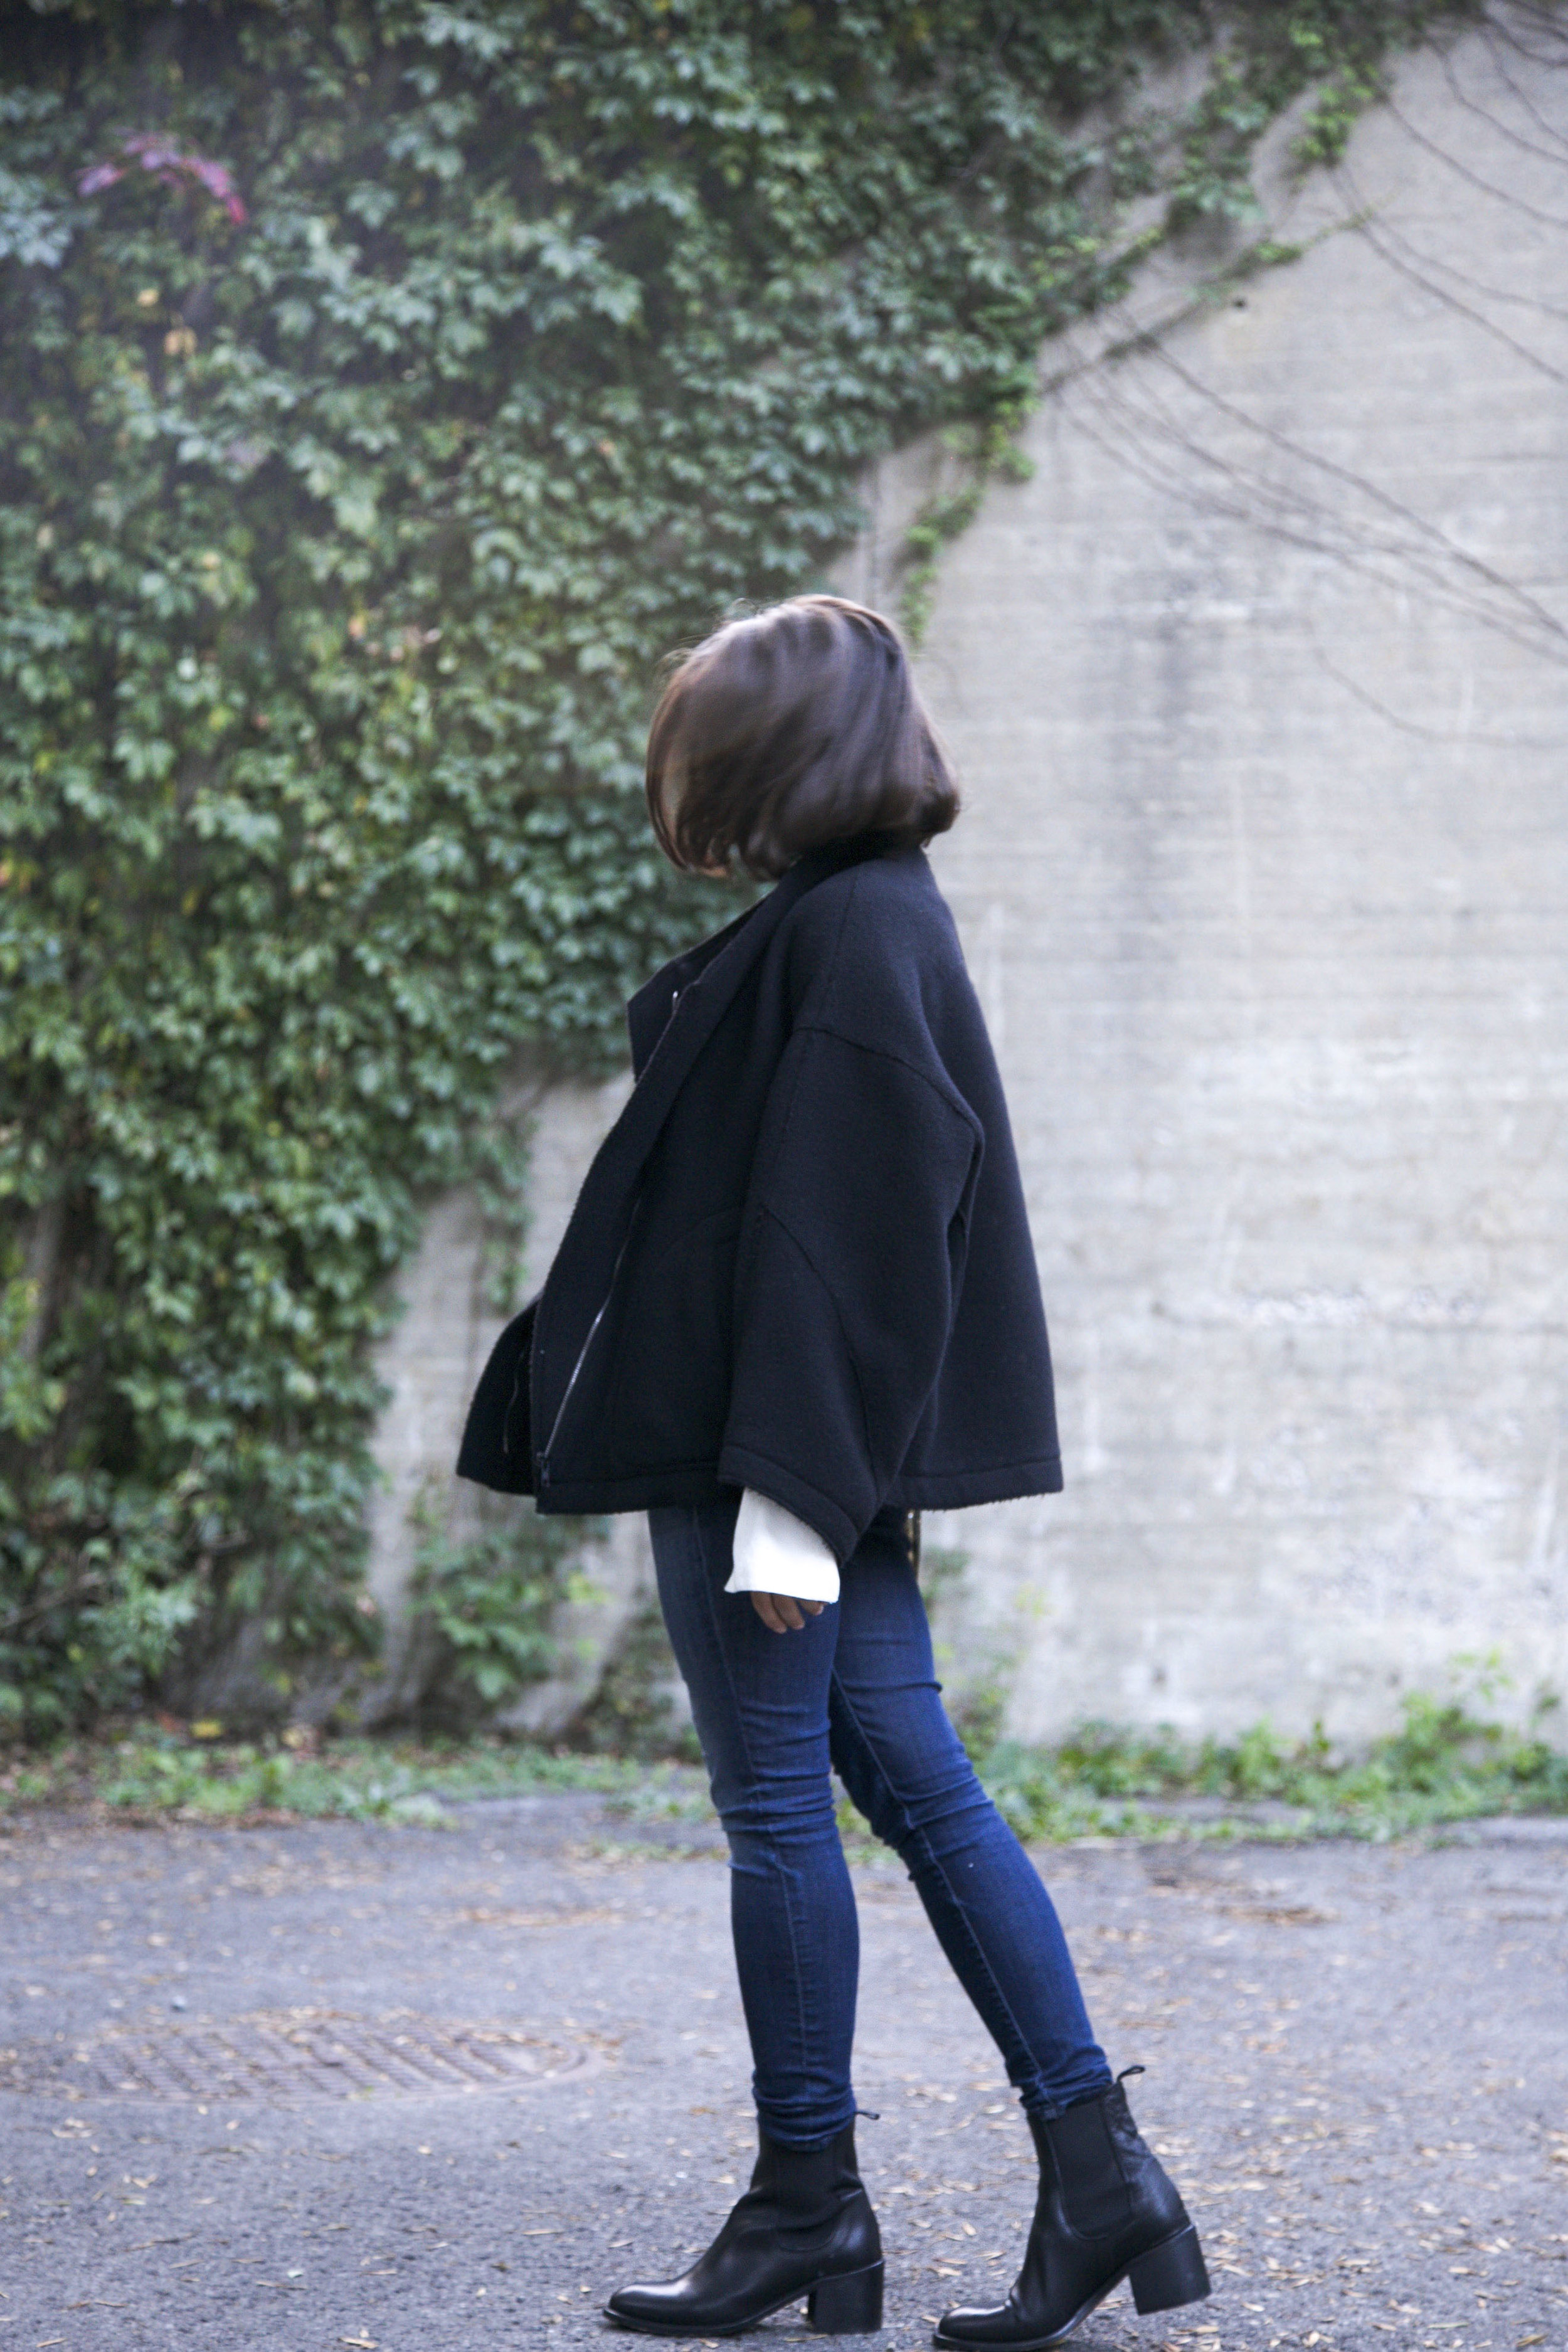 H&M Studio A/W Blouse and Bag, Frame Jeans, Damir Doma Coat, L'intervalle Shoes